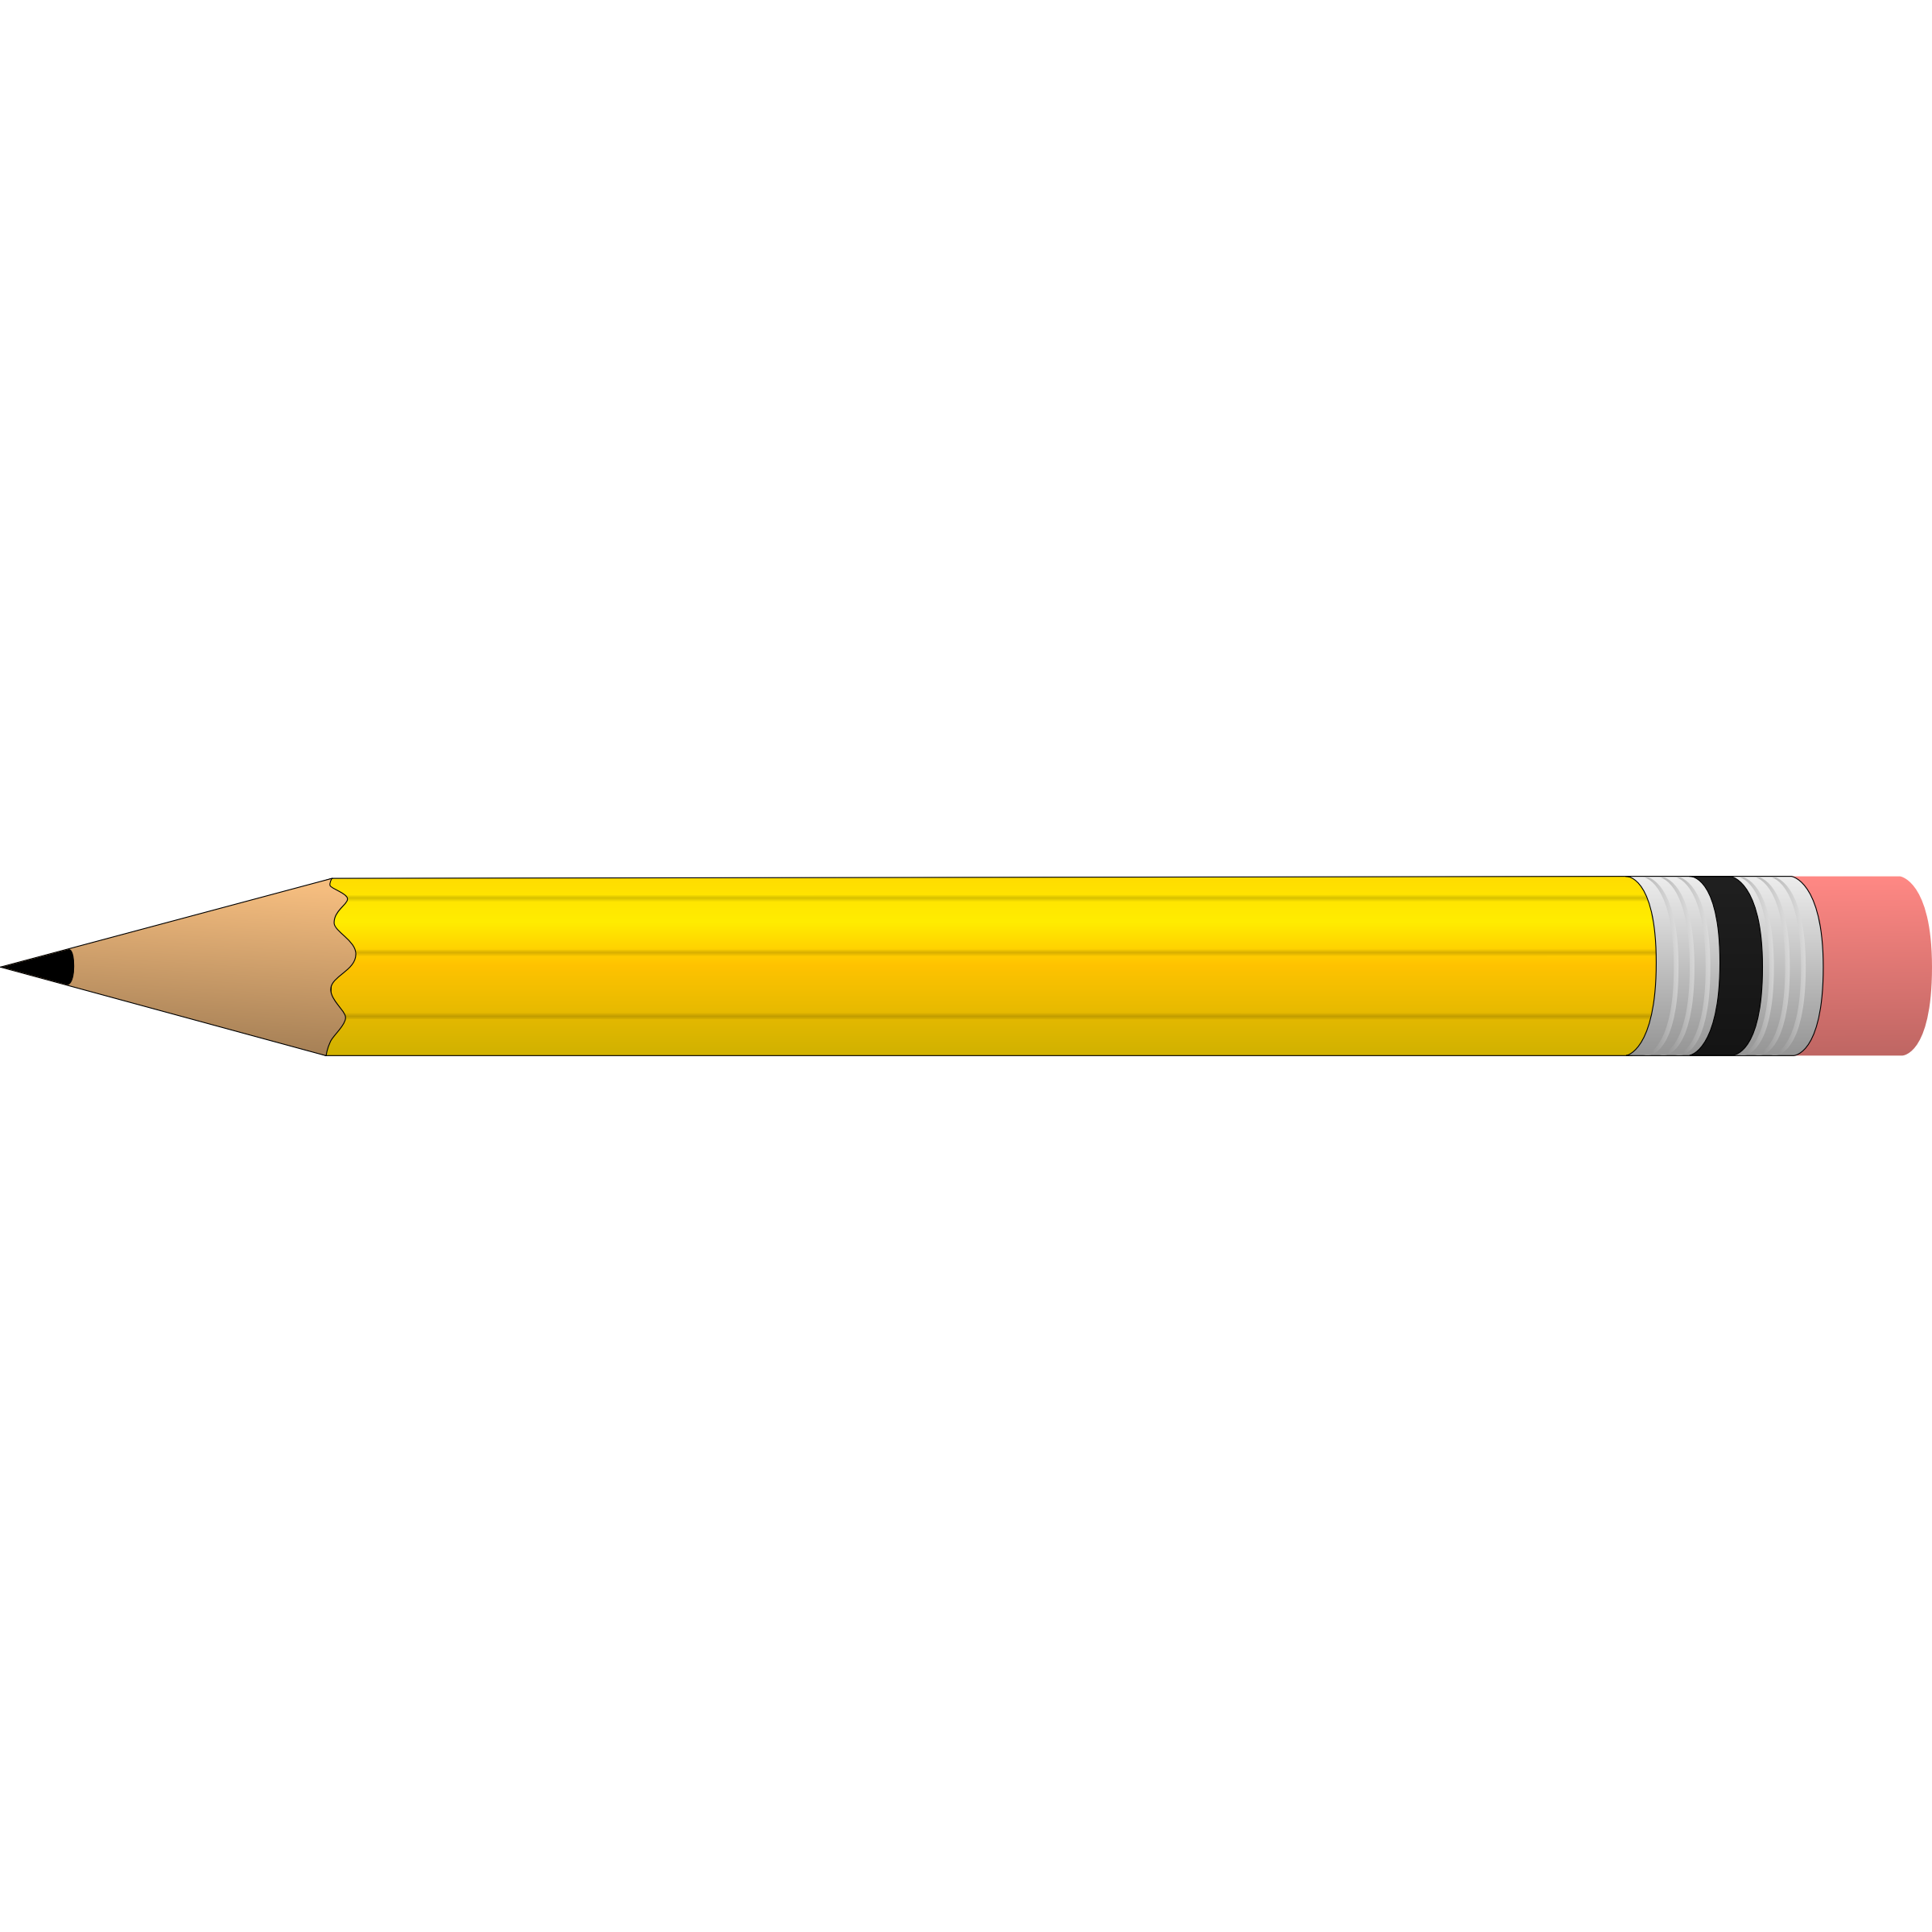 Pencil clipart #10, Download drawings